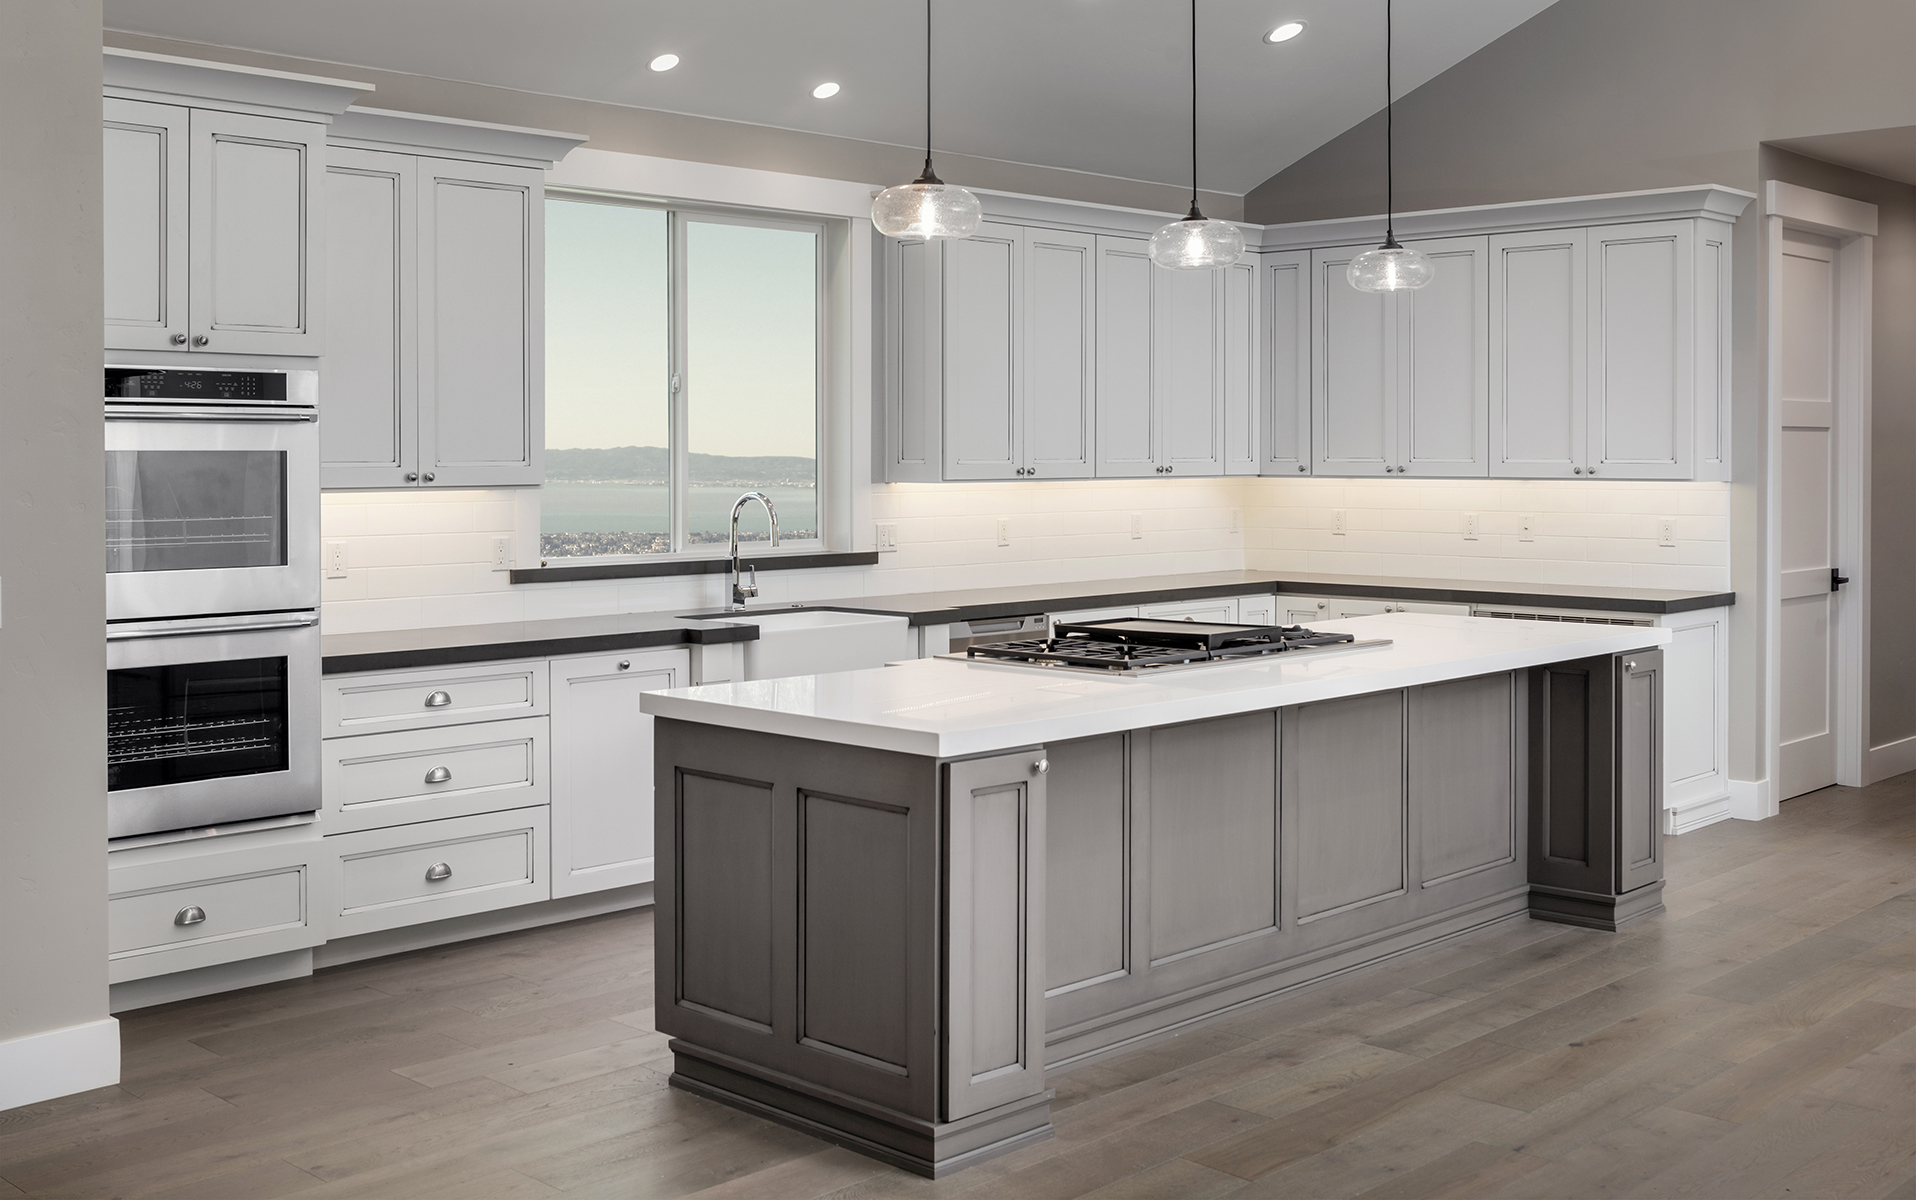 New Kitchen Cabinets Tips For Upgrading Kitchen Cabinets